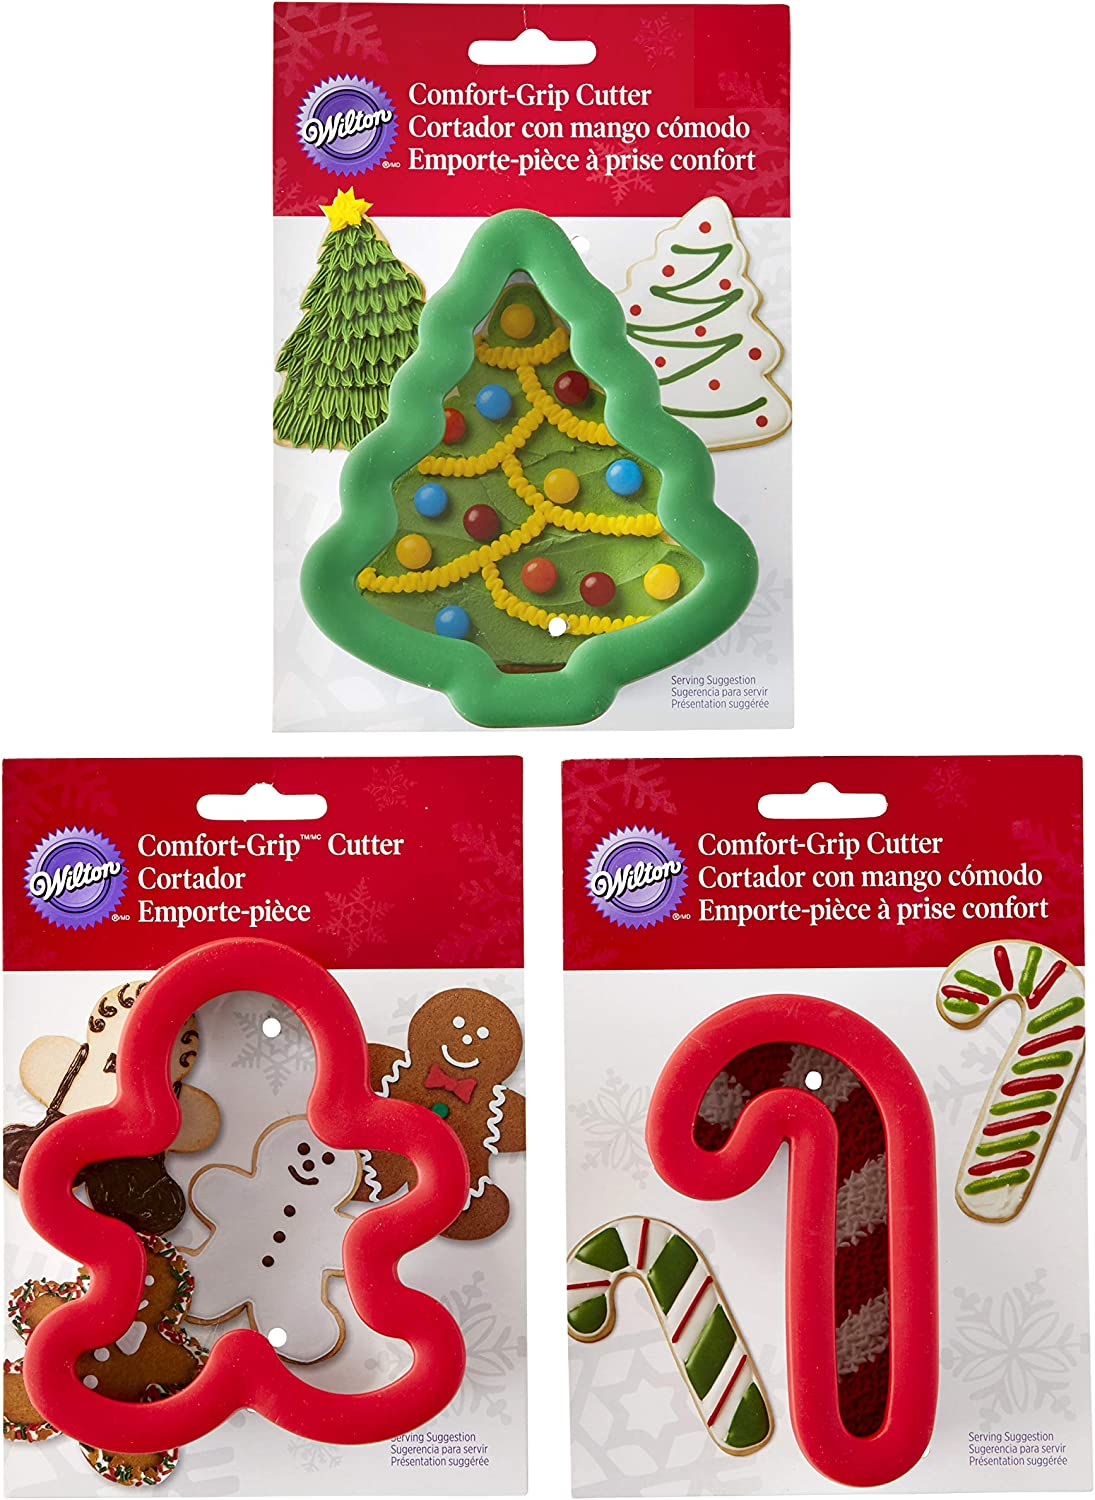 Wilton Holiday Comfort-Grip Christmas Cookie Cutter Set, 3-Piece